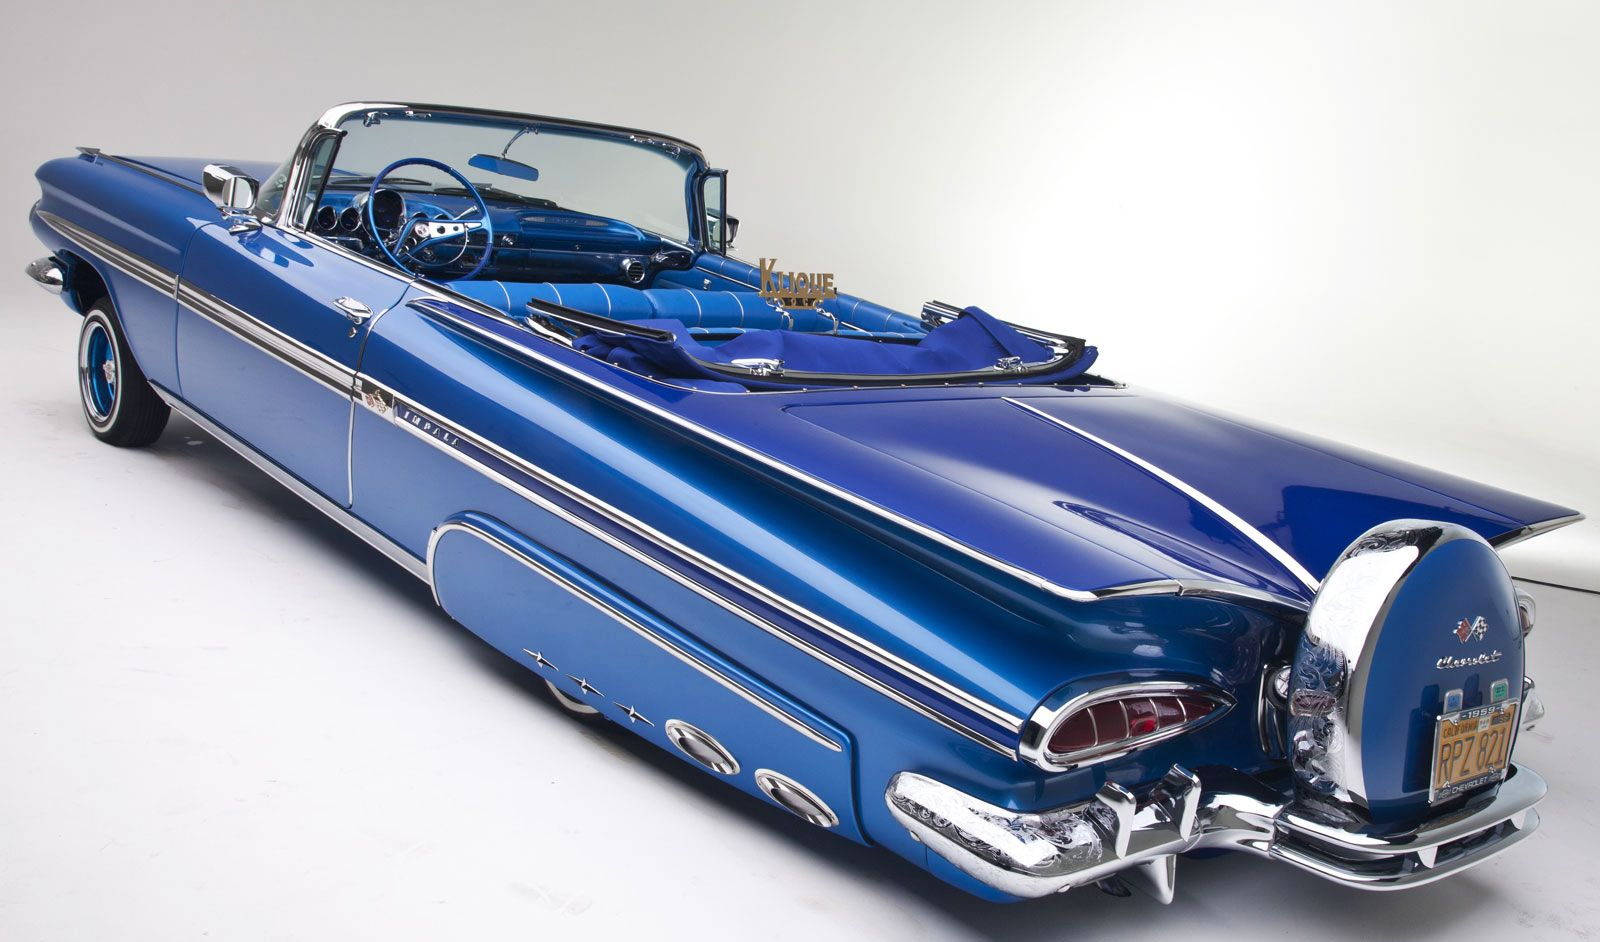 Chevrolet Impala Convertible Lowrider By Vertualissimo On